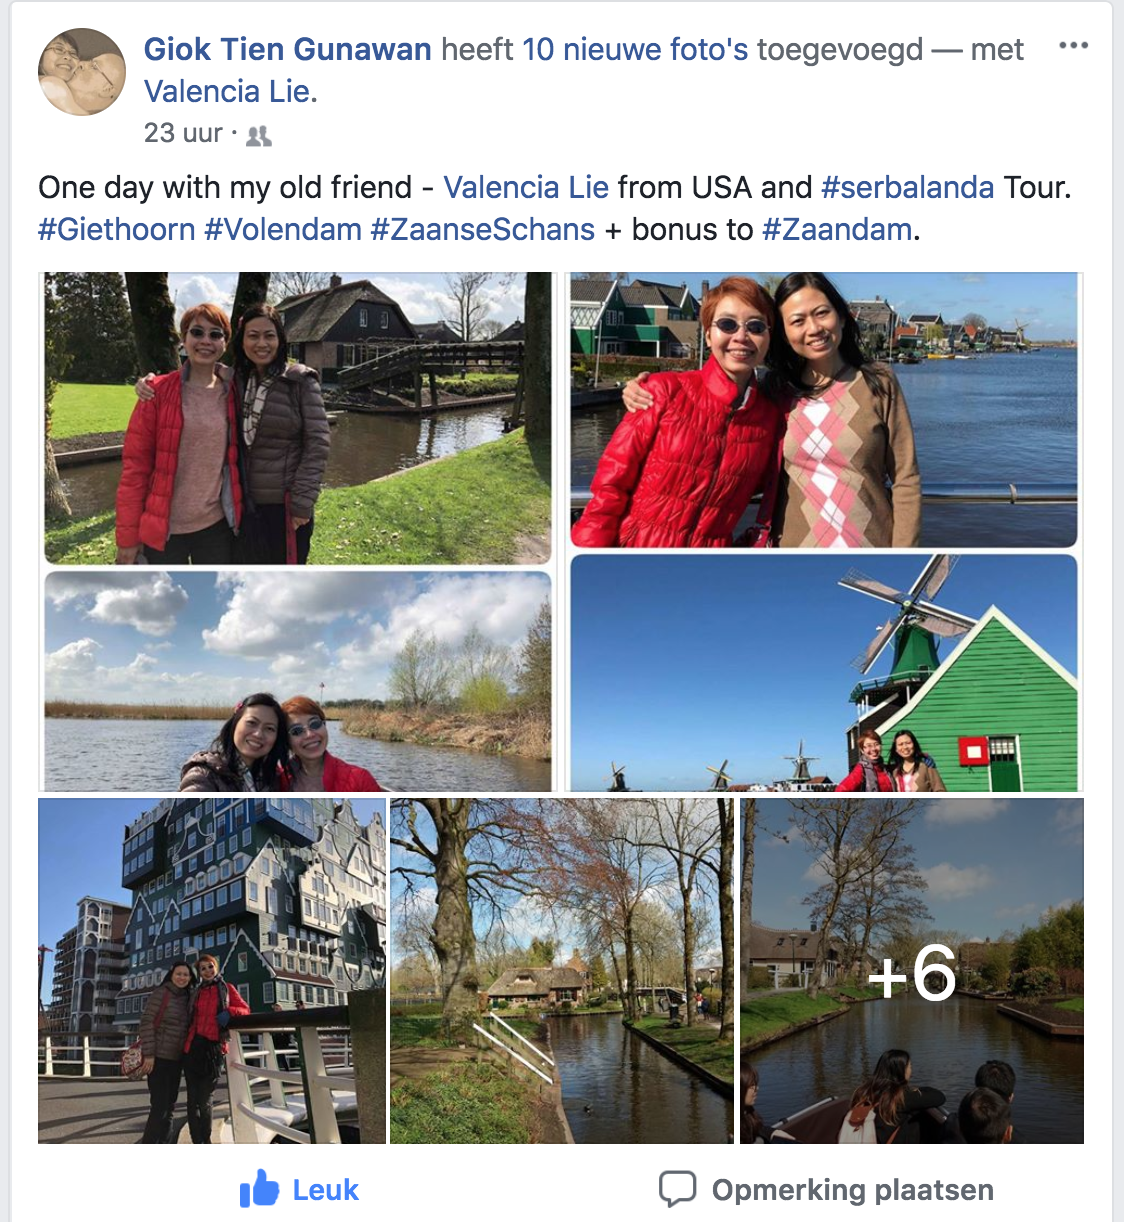 One Day with my old fiend from USA and Serbalanda Tour. Giethoorn, Volendam dan Zaanse Schans and bonus Zaandam.